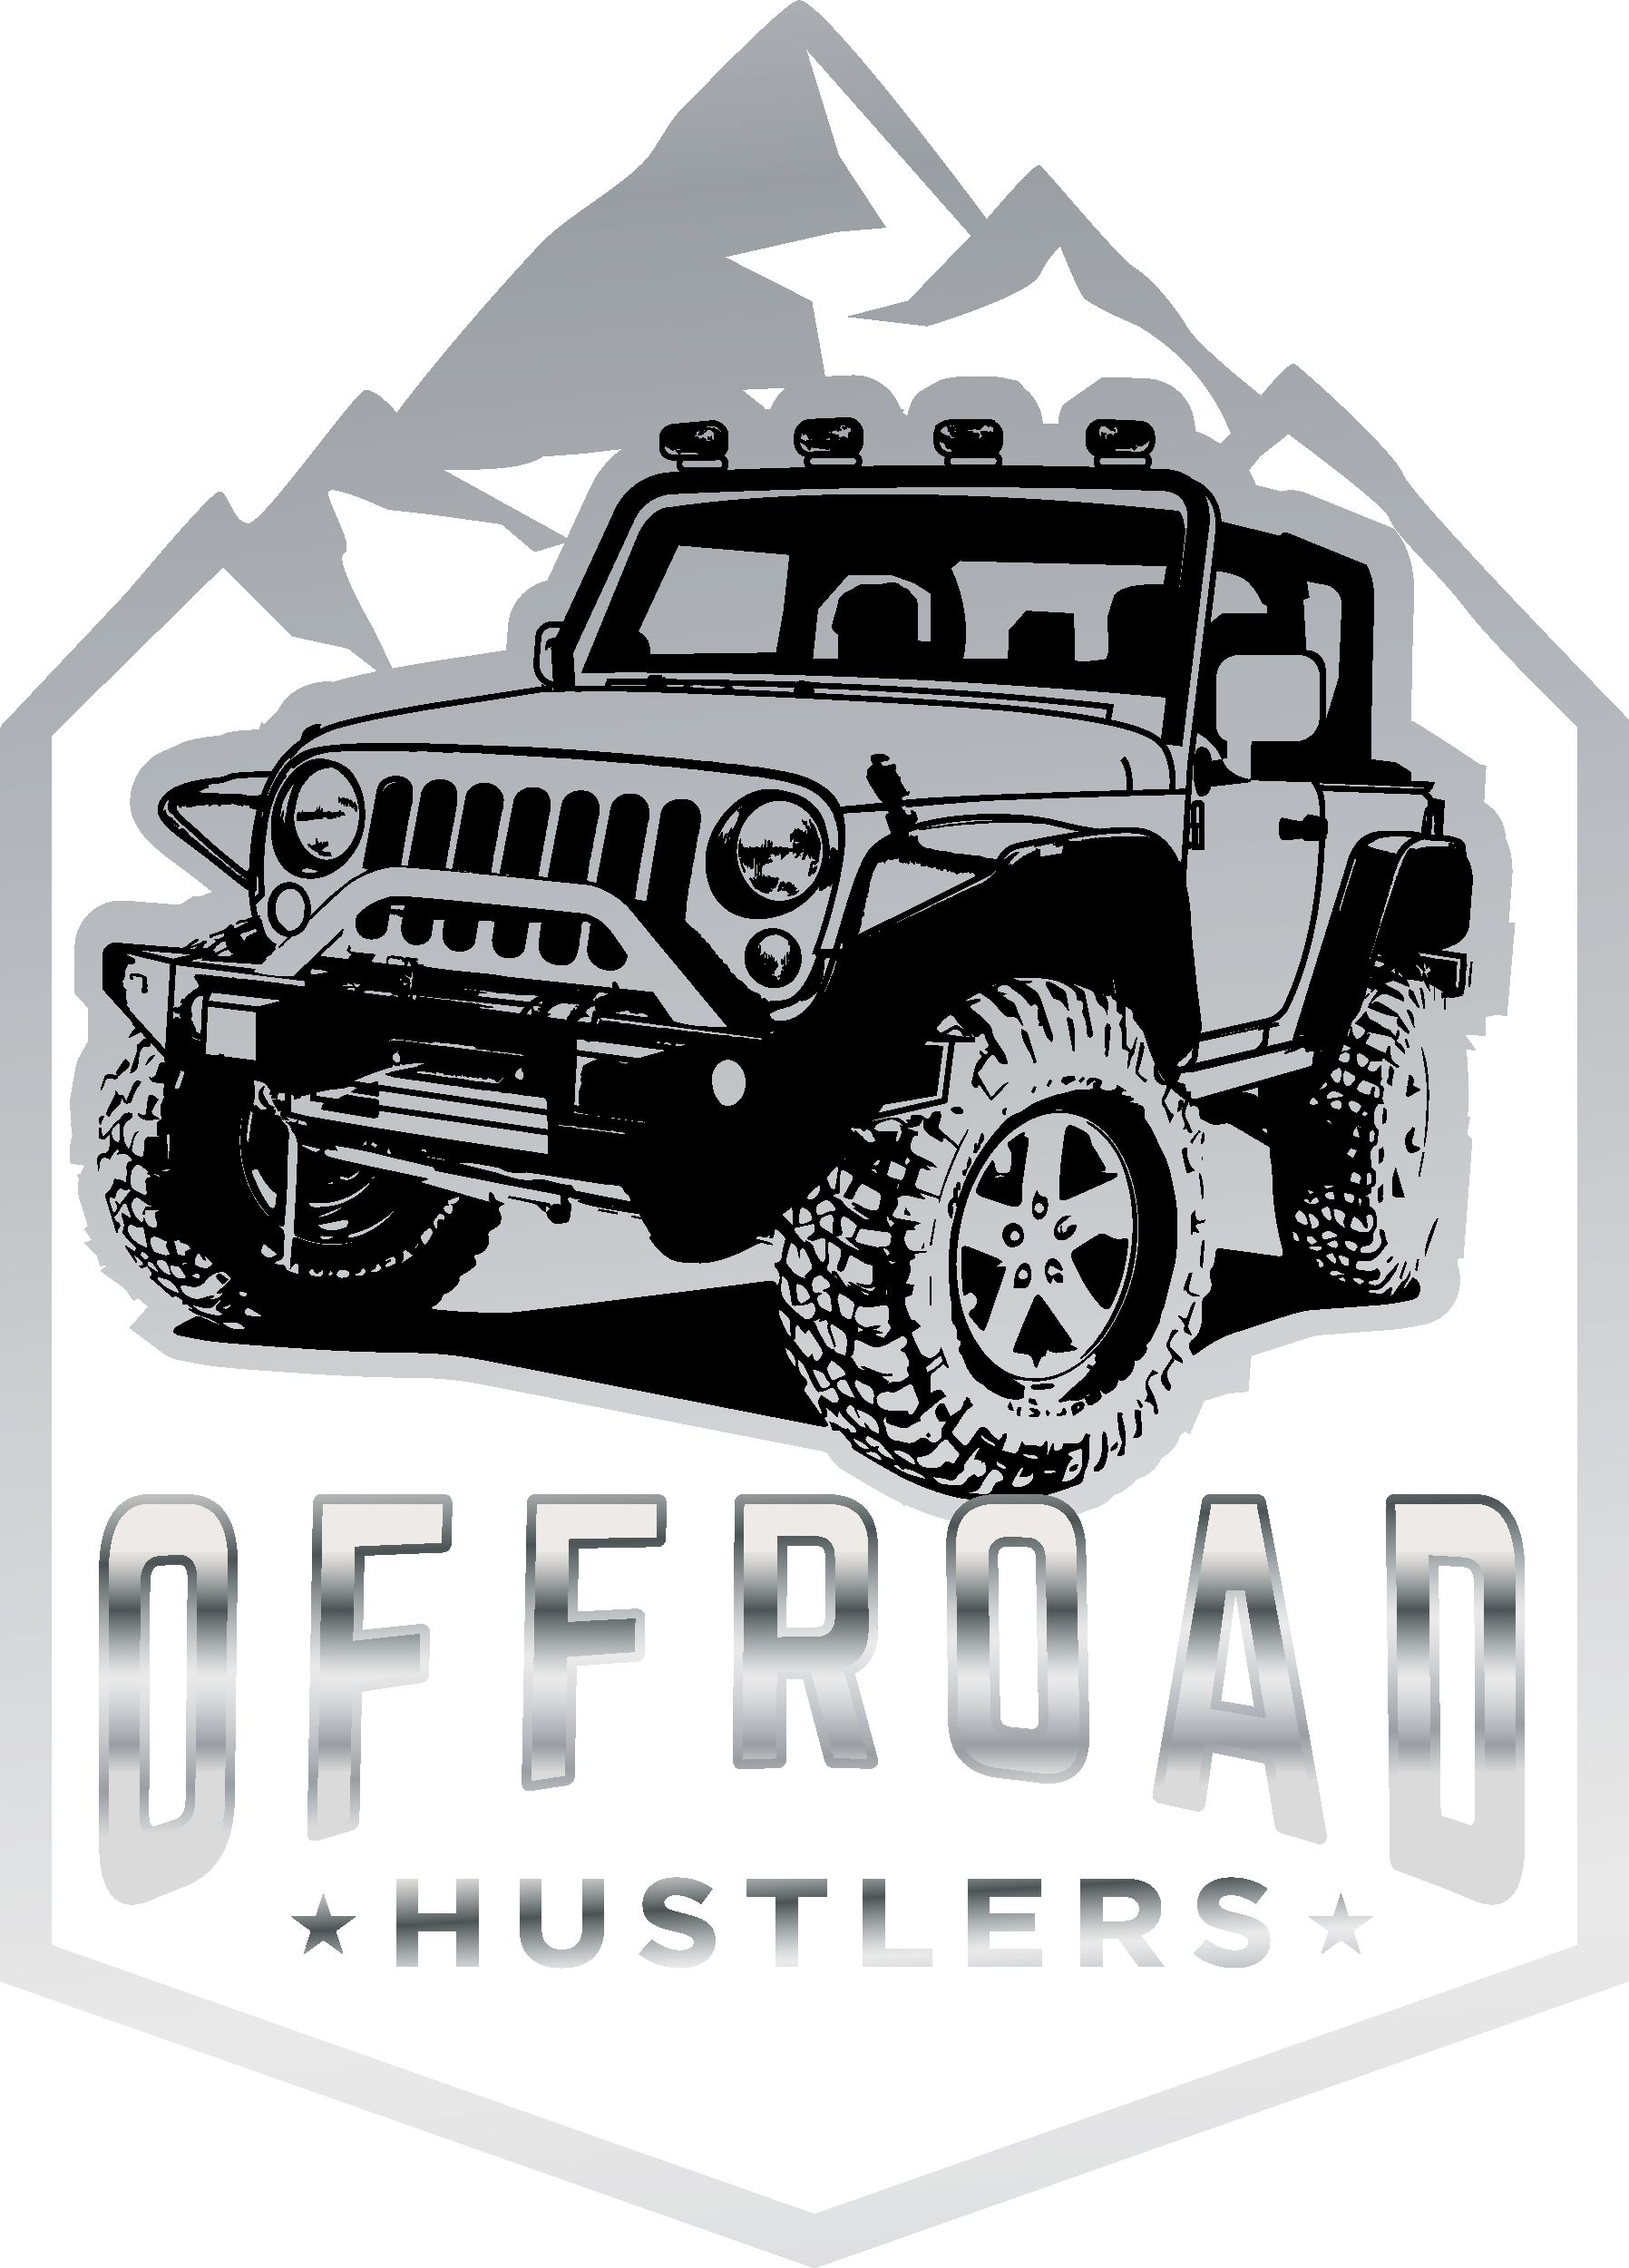 Design a powerful Brand that Offroaders will put on their vehicles